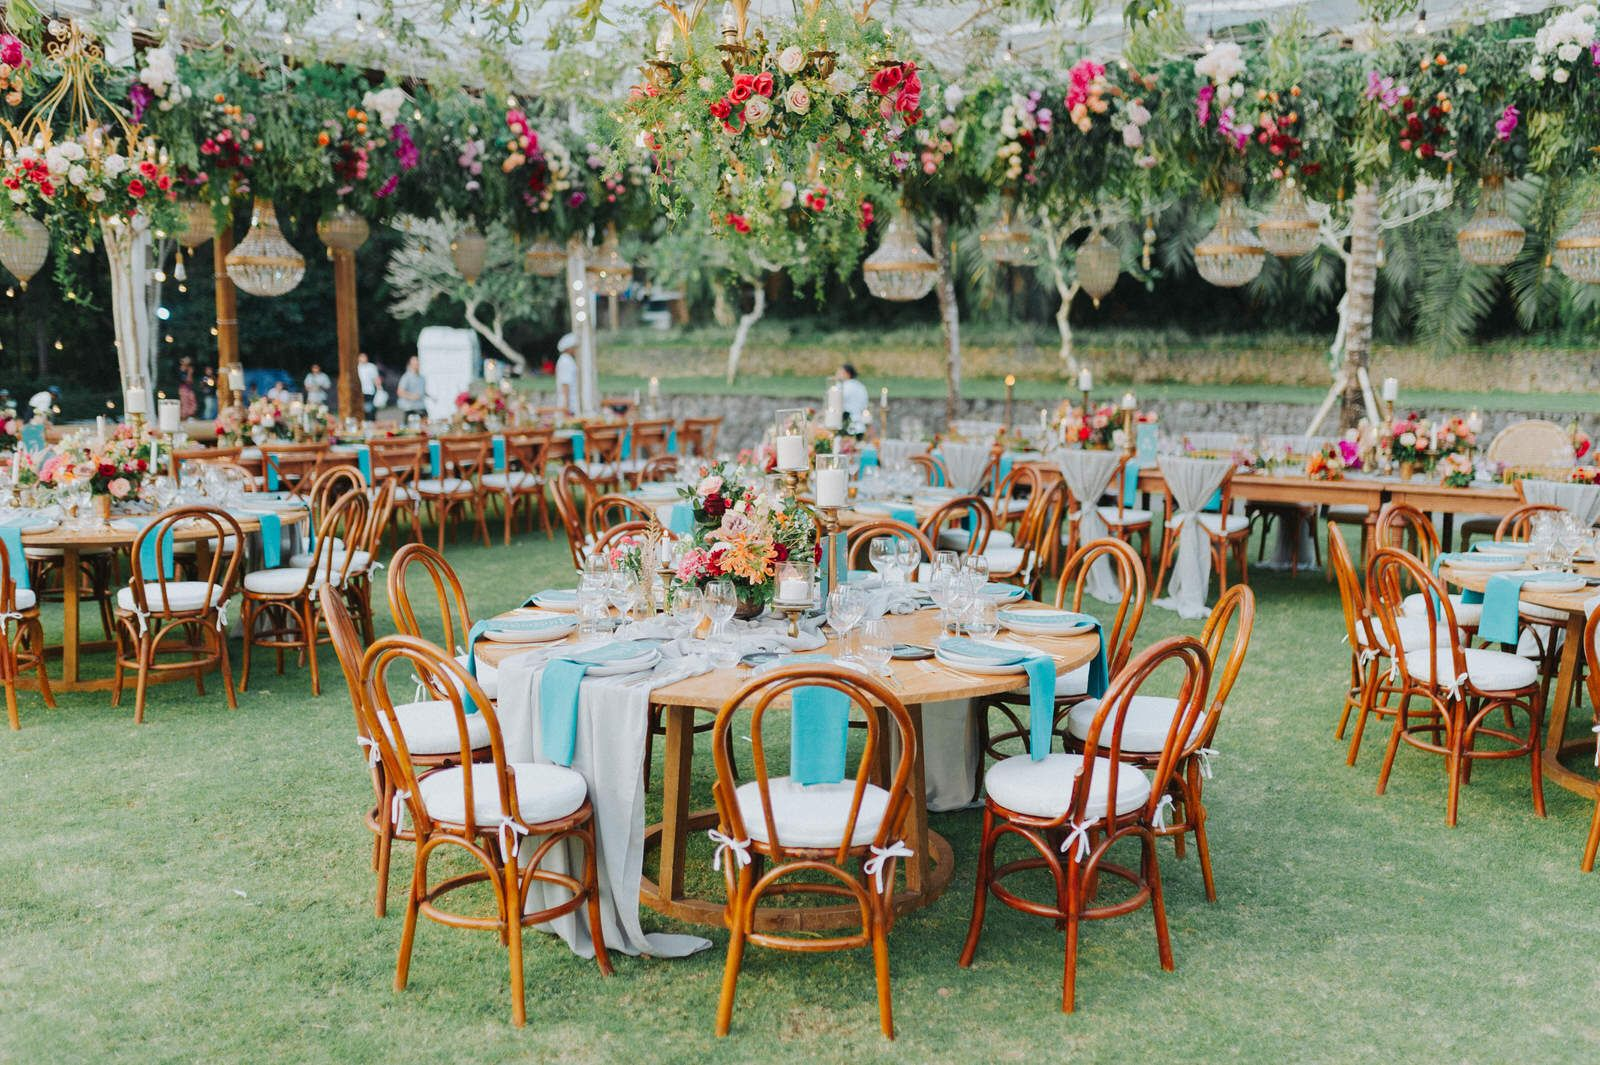 Midsummer Night Dream Meets Asia Wedding Theme In Bali Captured By Terralogical Bali Wedding Winter Wedding Destinations Destination Wedding Locations